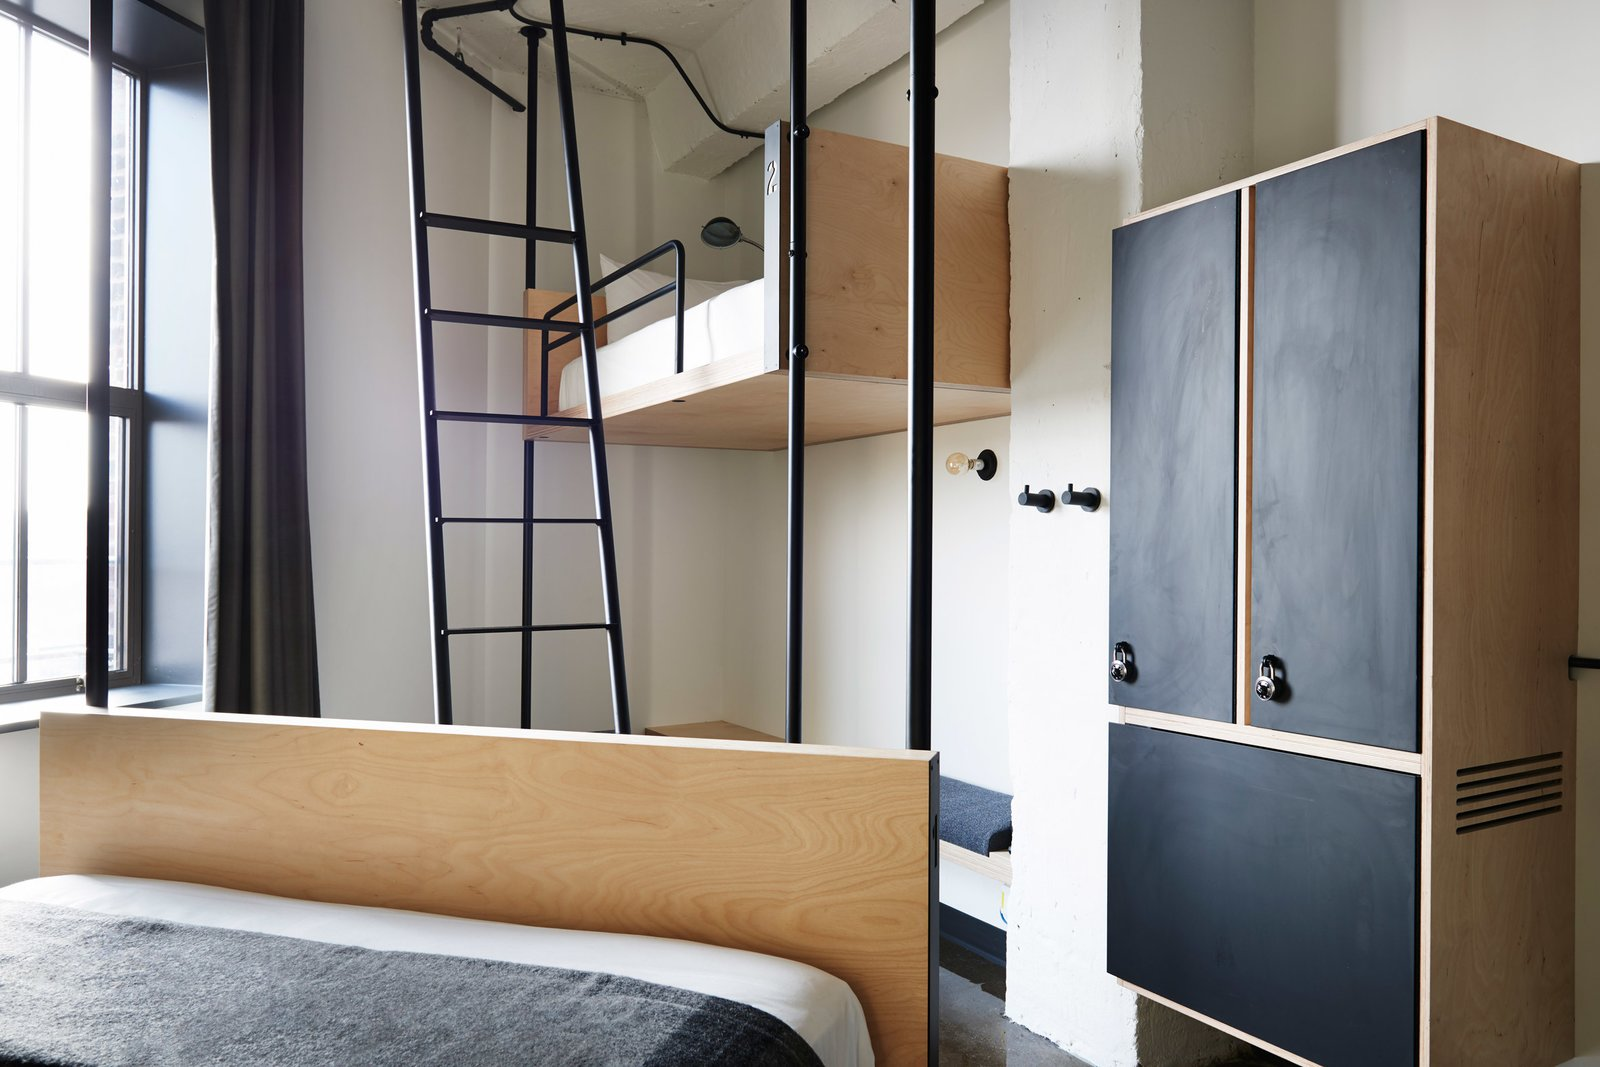 Bedroom, Bunks, Bed, Wall Lighting, and Wardrobe Photography is by Olivier Blouin.  Photos from Well-Designed Hostels